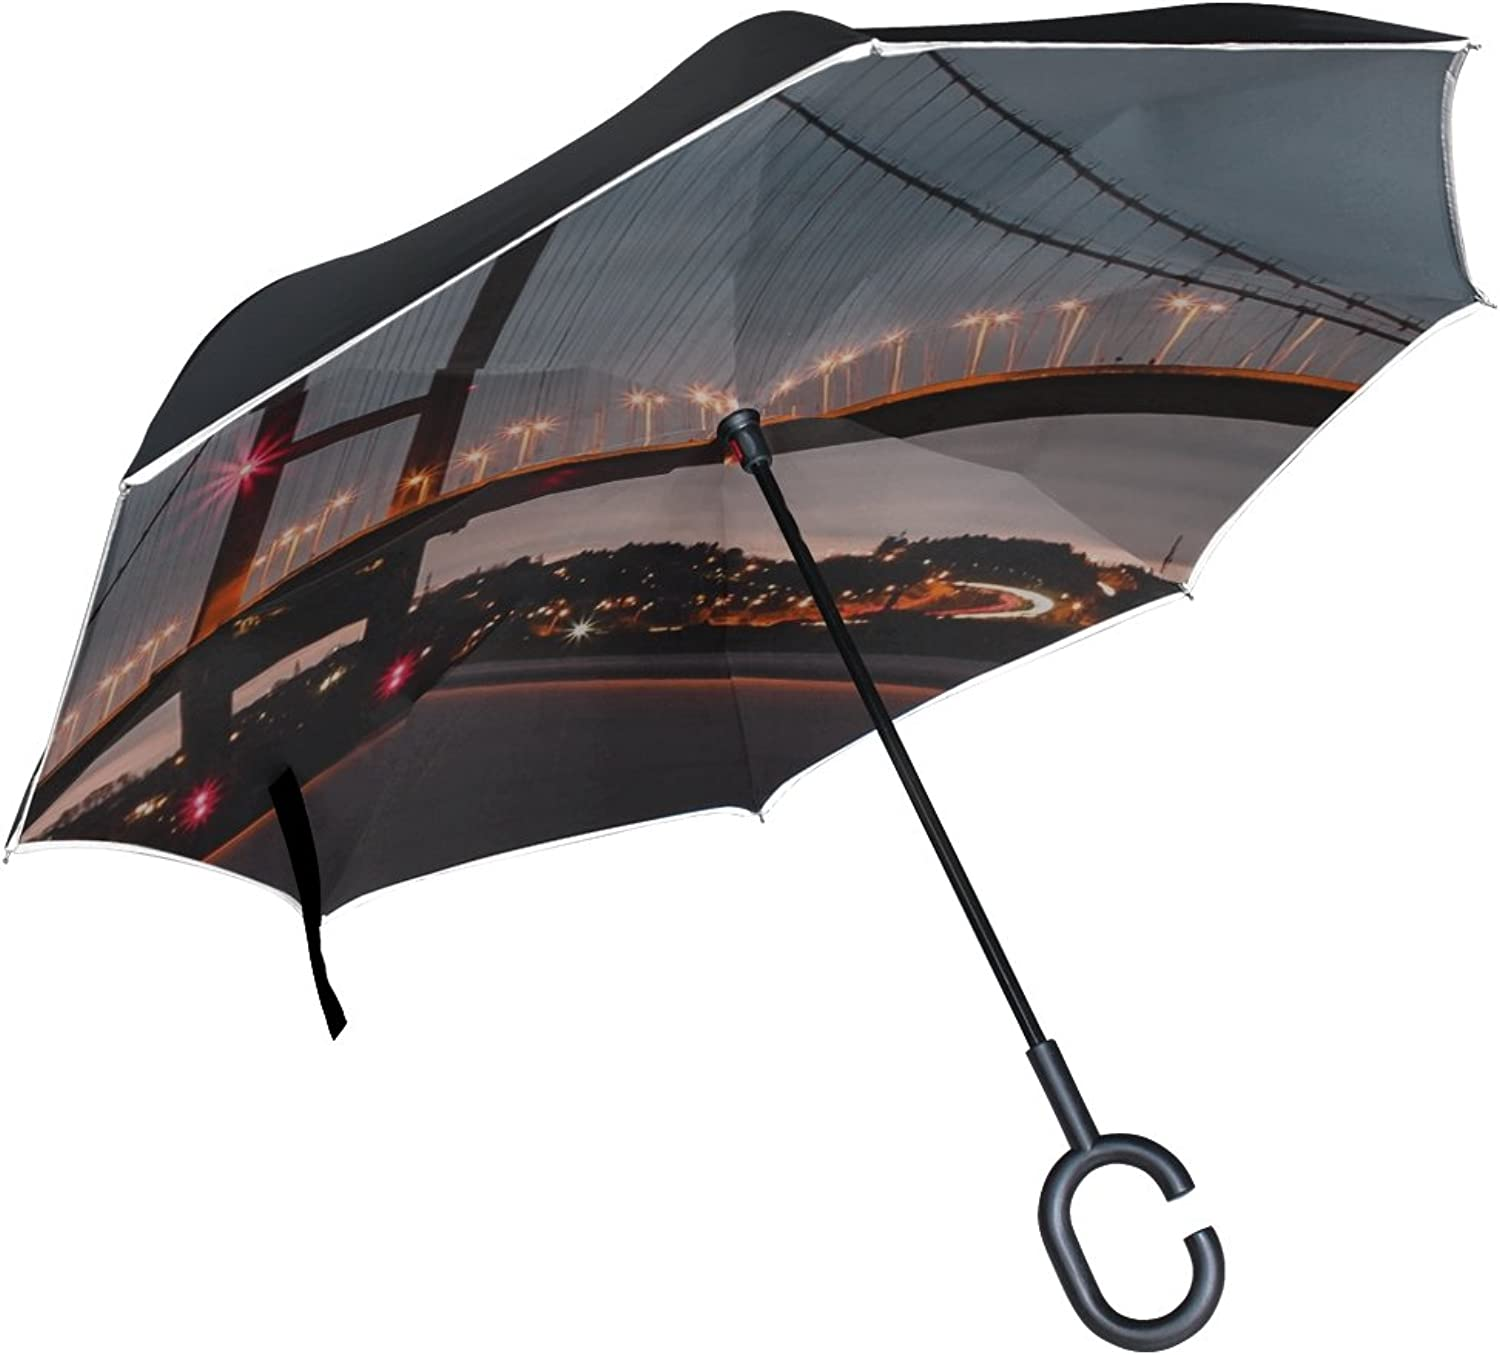 Rh Studio Ingreened Umbrella golden Gate Bridge Night Ingreened Umbrella Large Double Layer Outdoor Rain Sun Car Reversible Umbrella